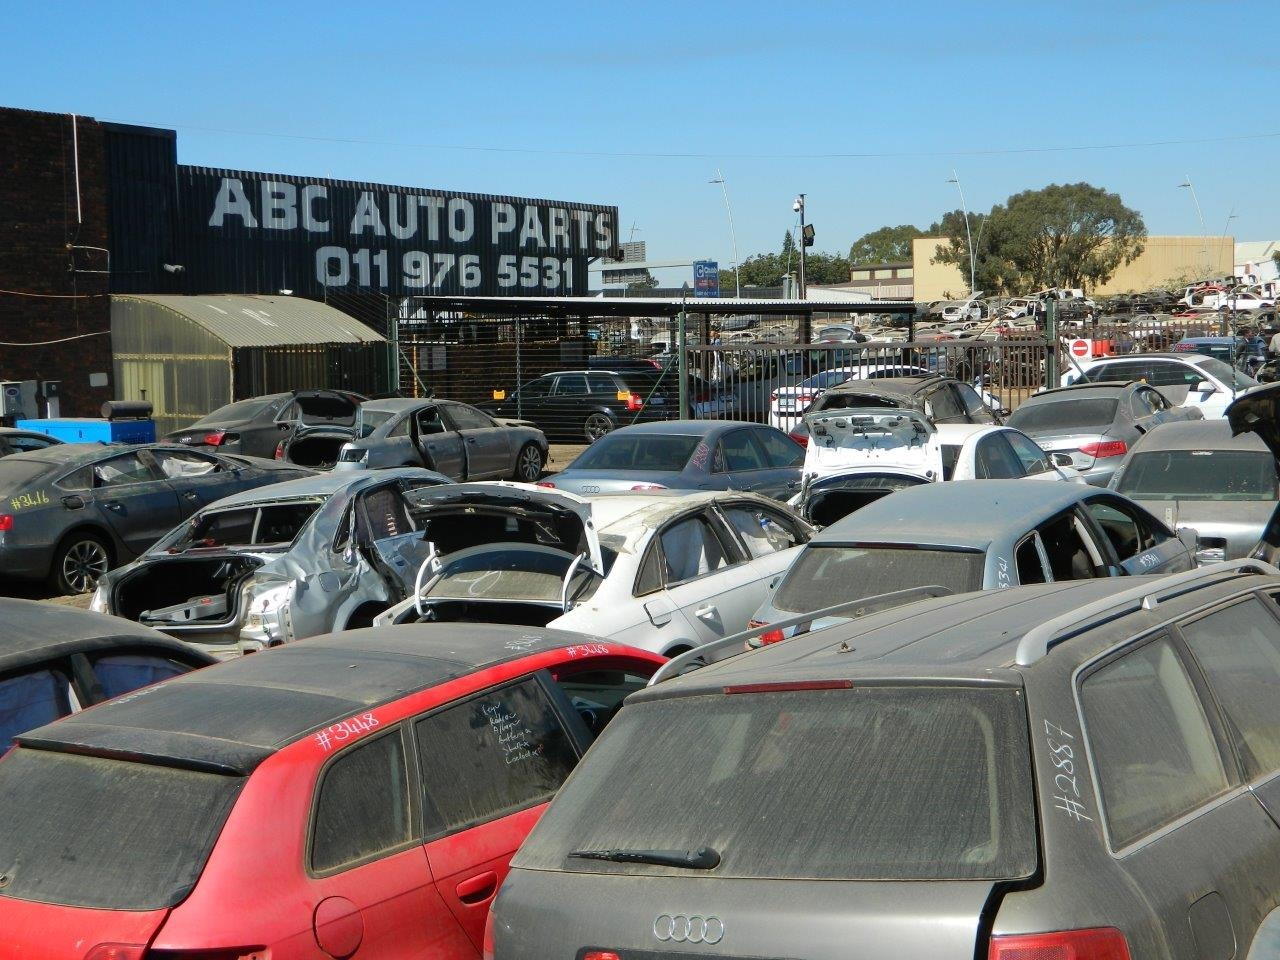 ABC Auto Parts - Cars Stripping